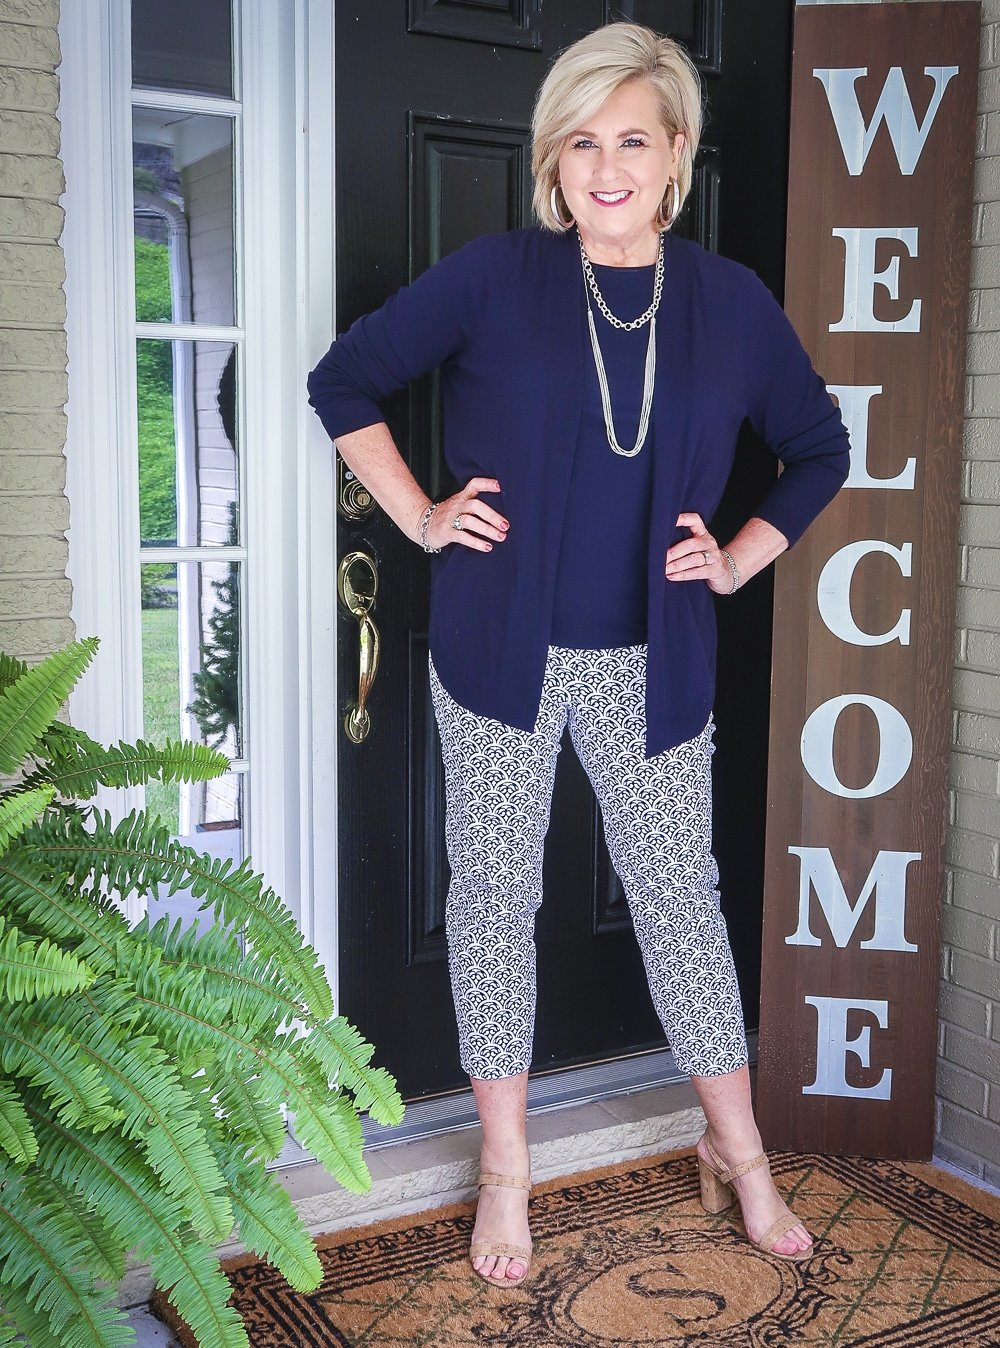 Fashion Blogger 50 Is Not Old is wearing a navy cardigan with a navy tank top, blue and white ankle pants, with cork heels